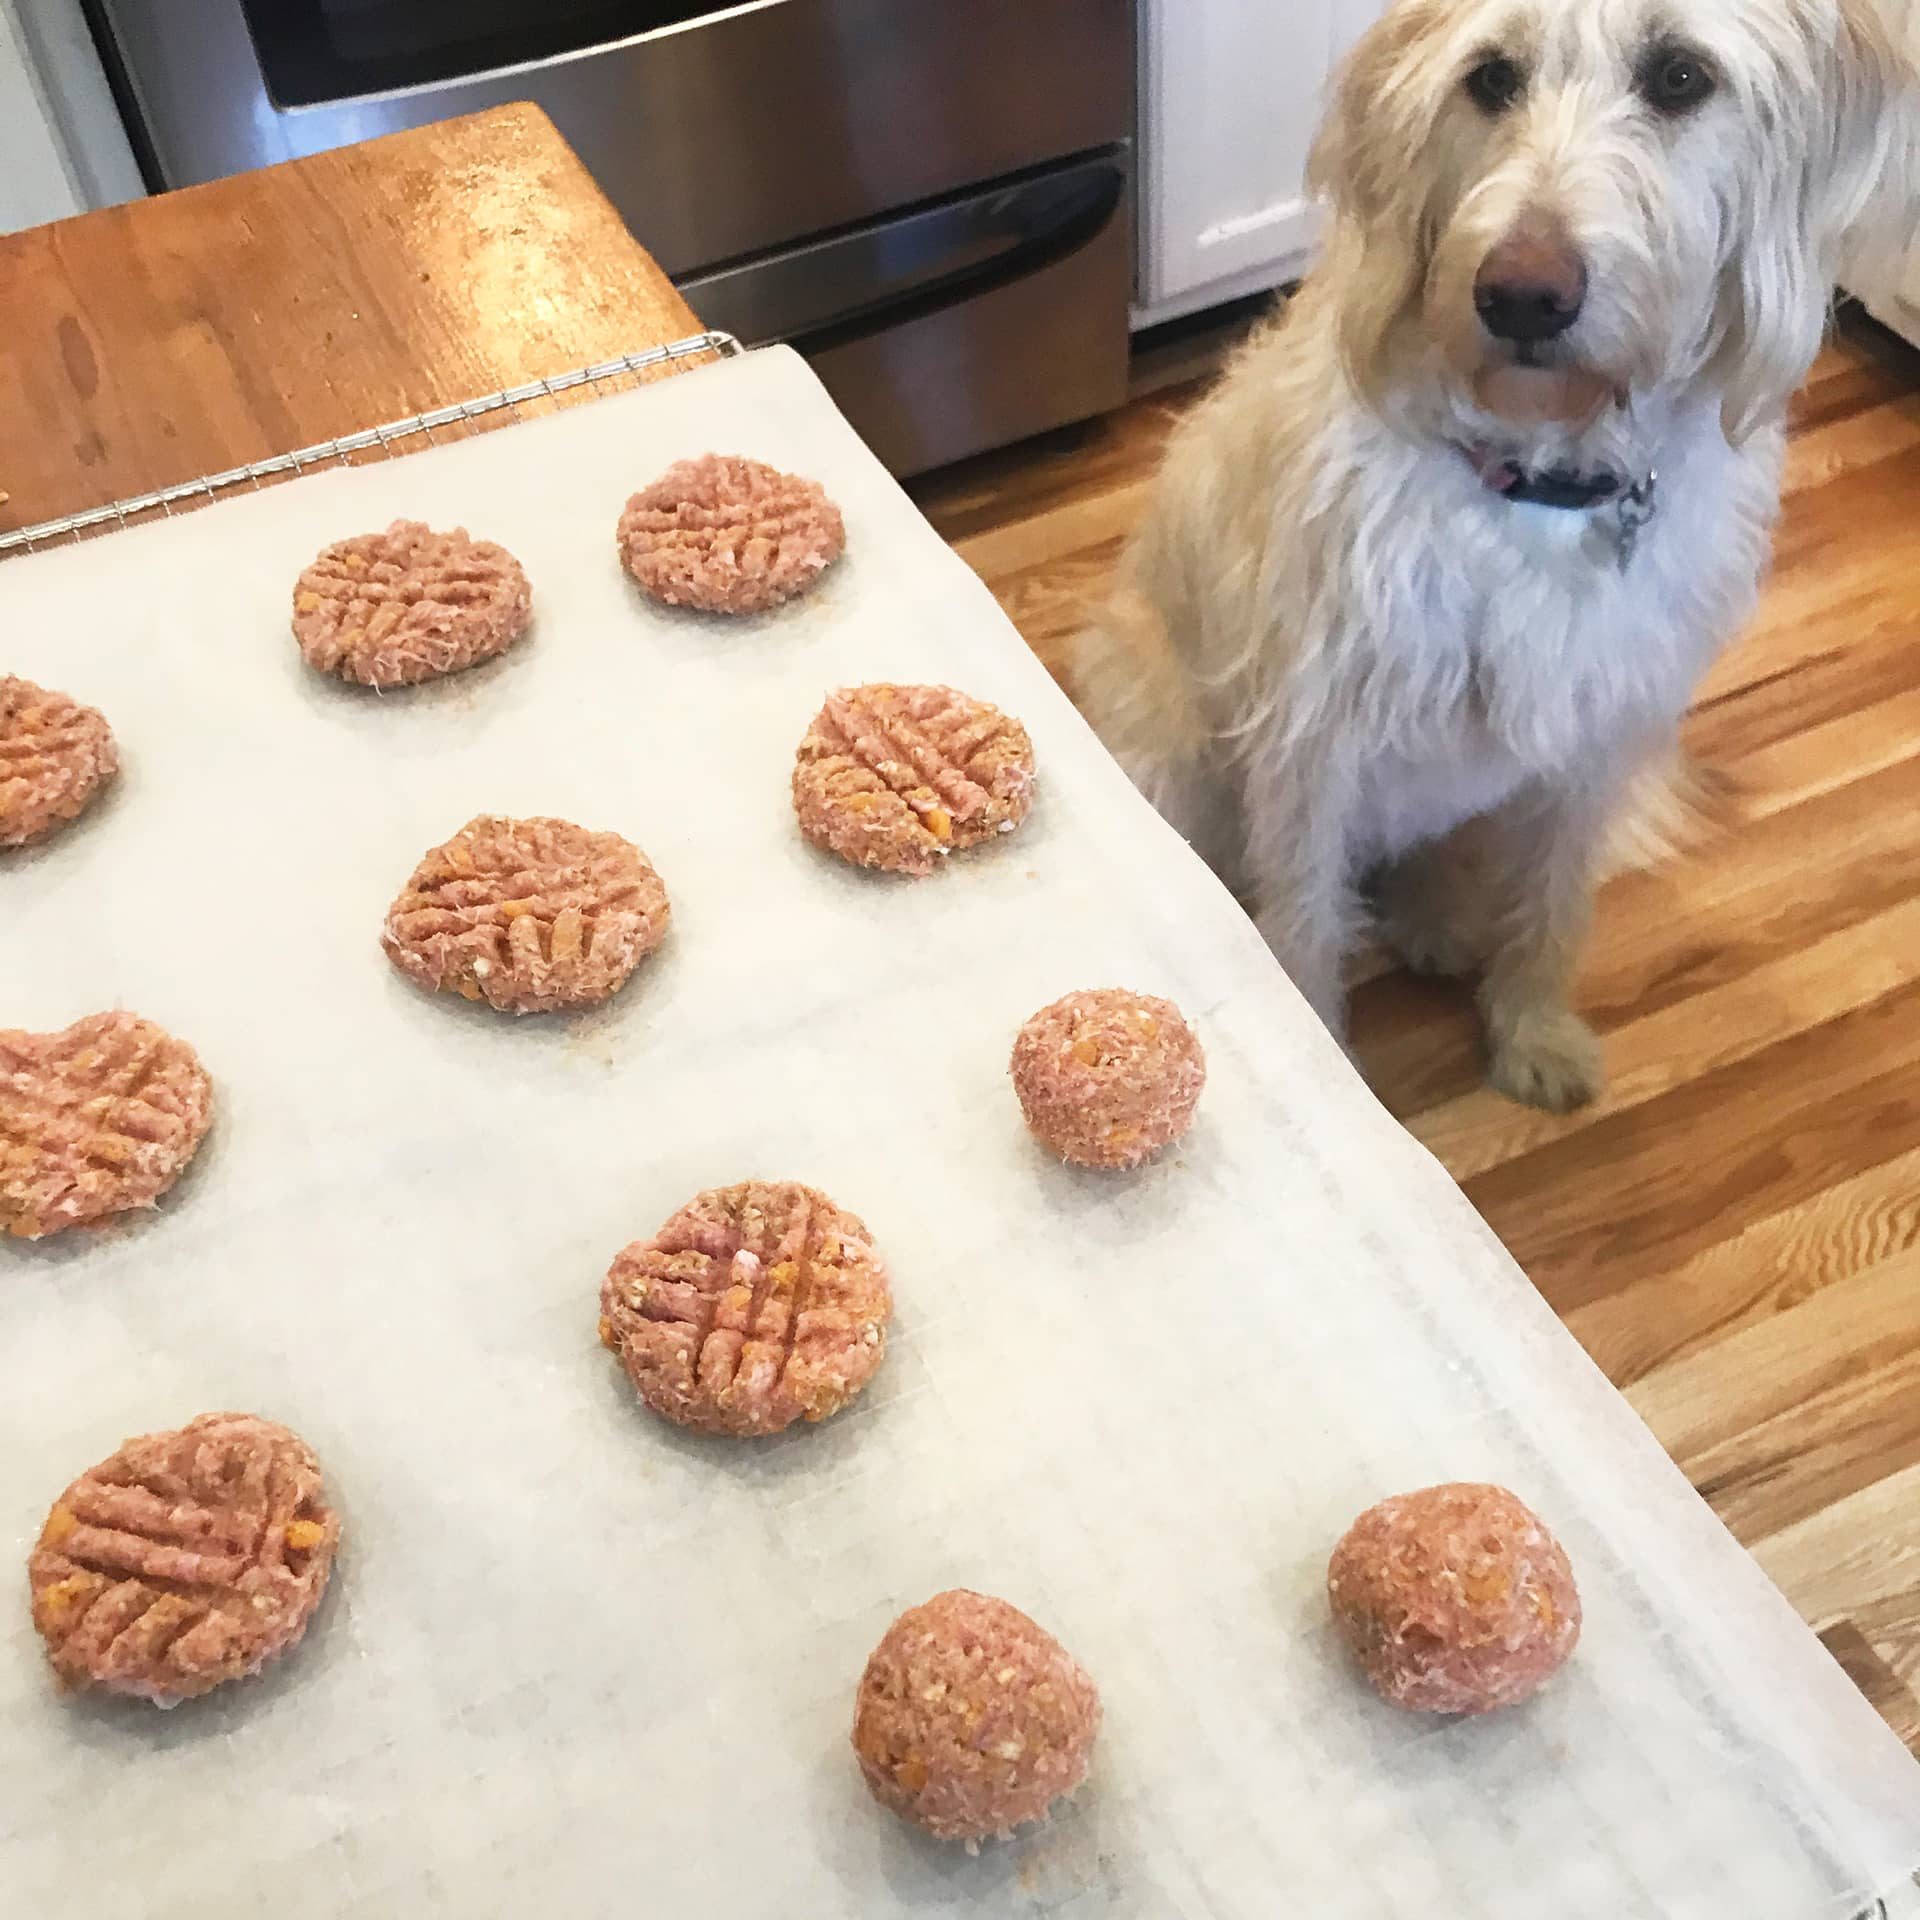 Sandy the dog looking at balls of dough